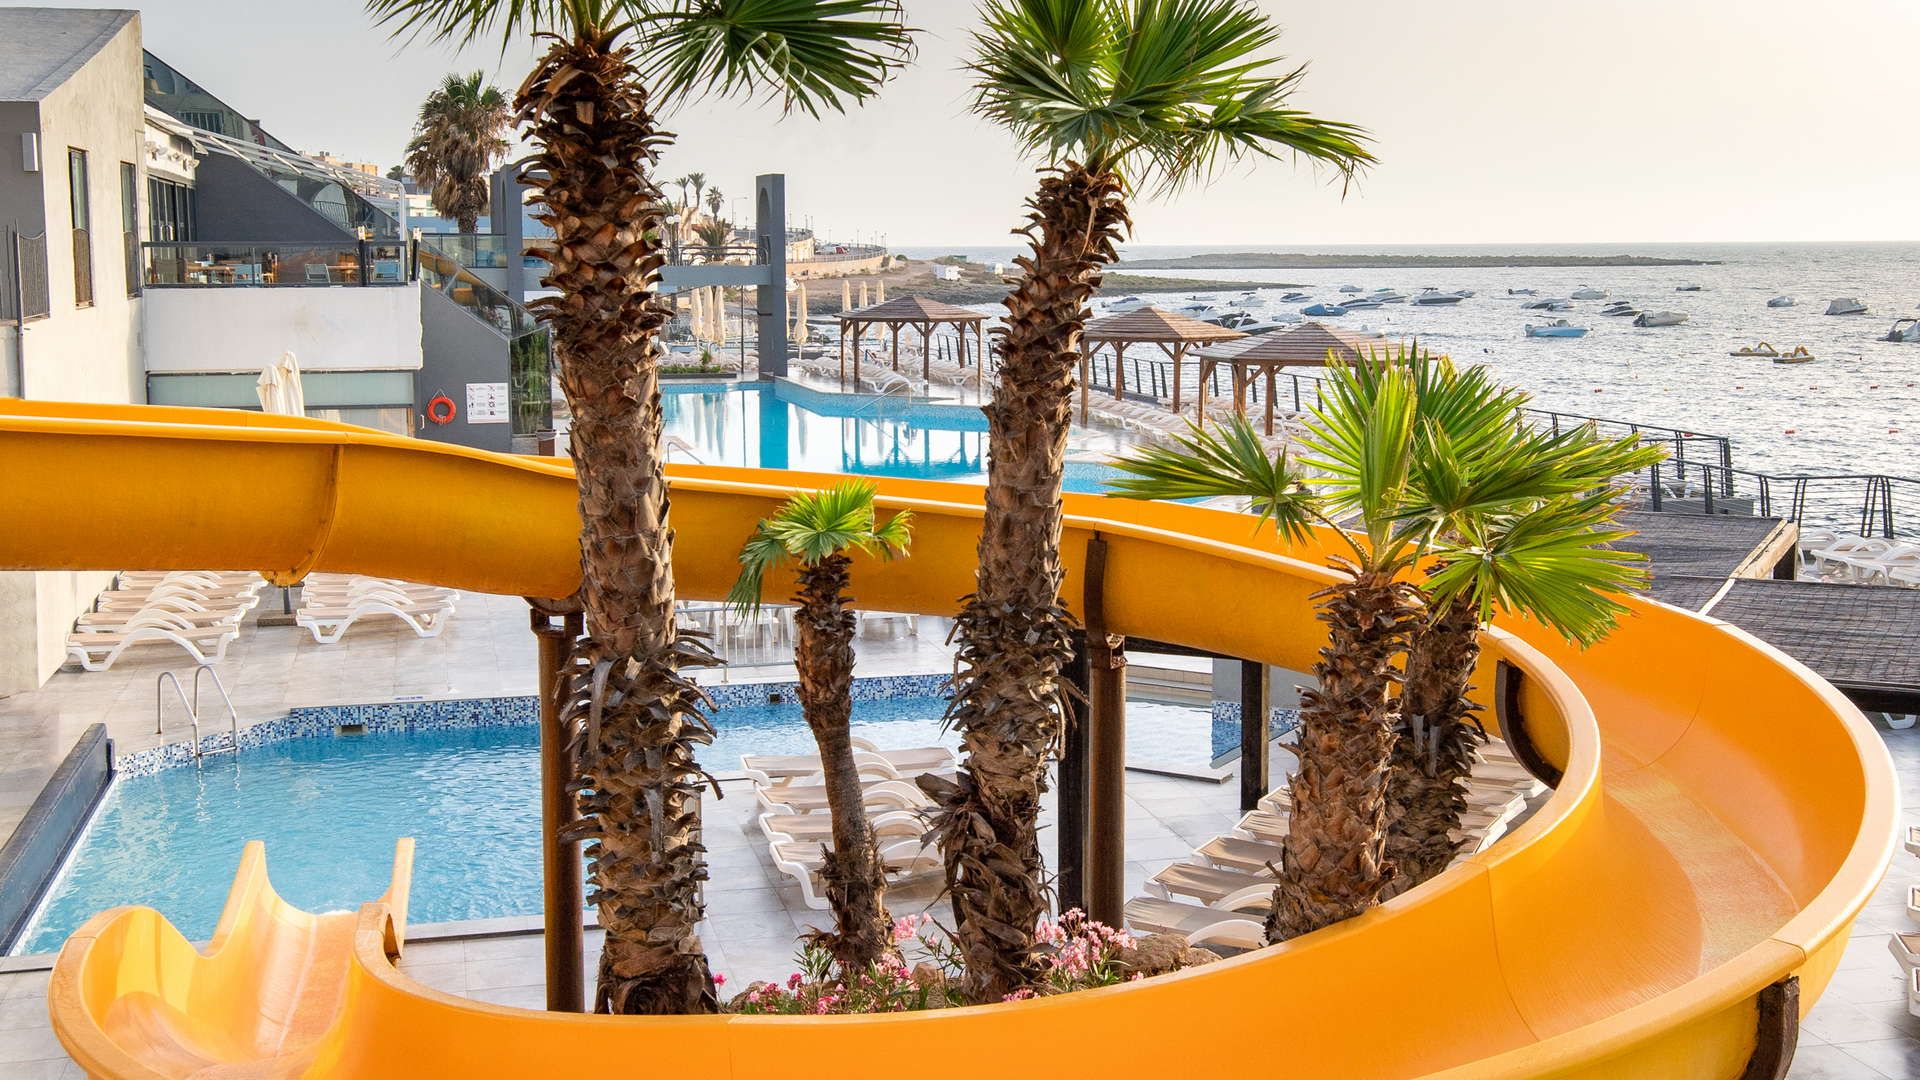 AX Seashells Resort at Suncrest - Childrens Pool